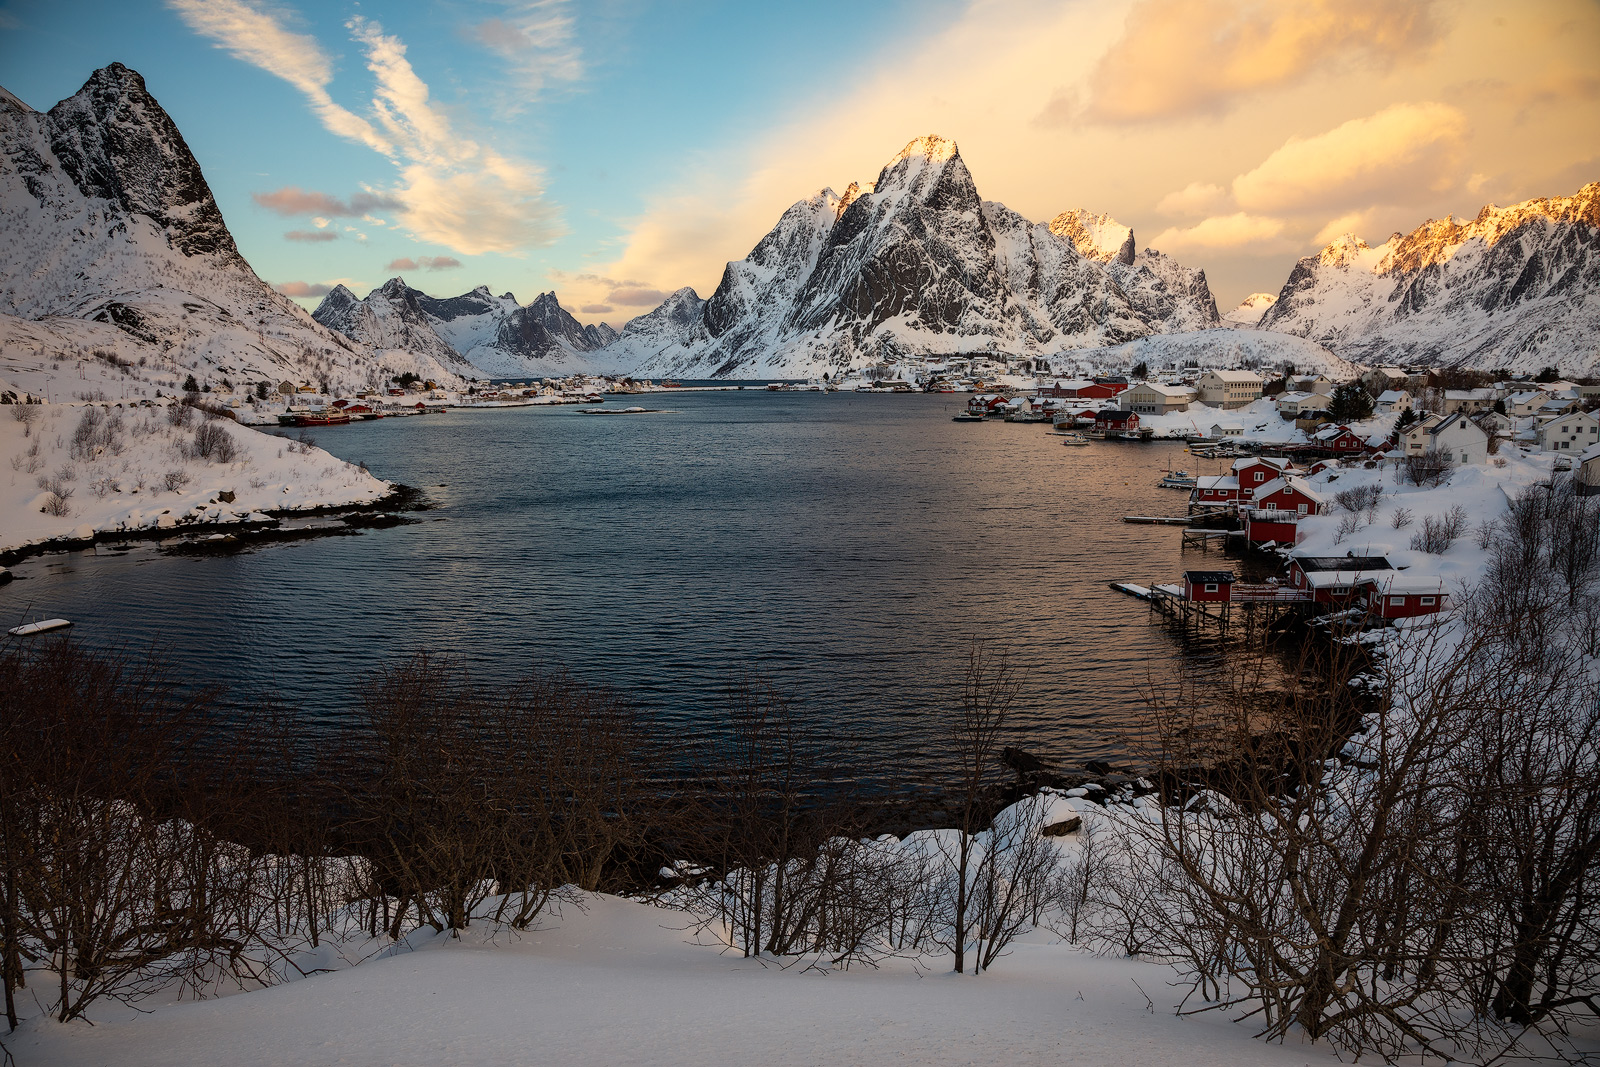 2019, blue hour, building, cabin, europe, evening, landscape, lofoten, moskenesøy, mountain, mountain range, norway, red, reine, scandinavia, snow, snow-capped mountains, winter, photo